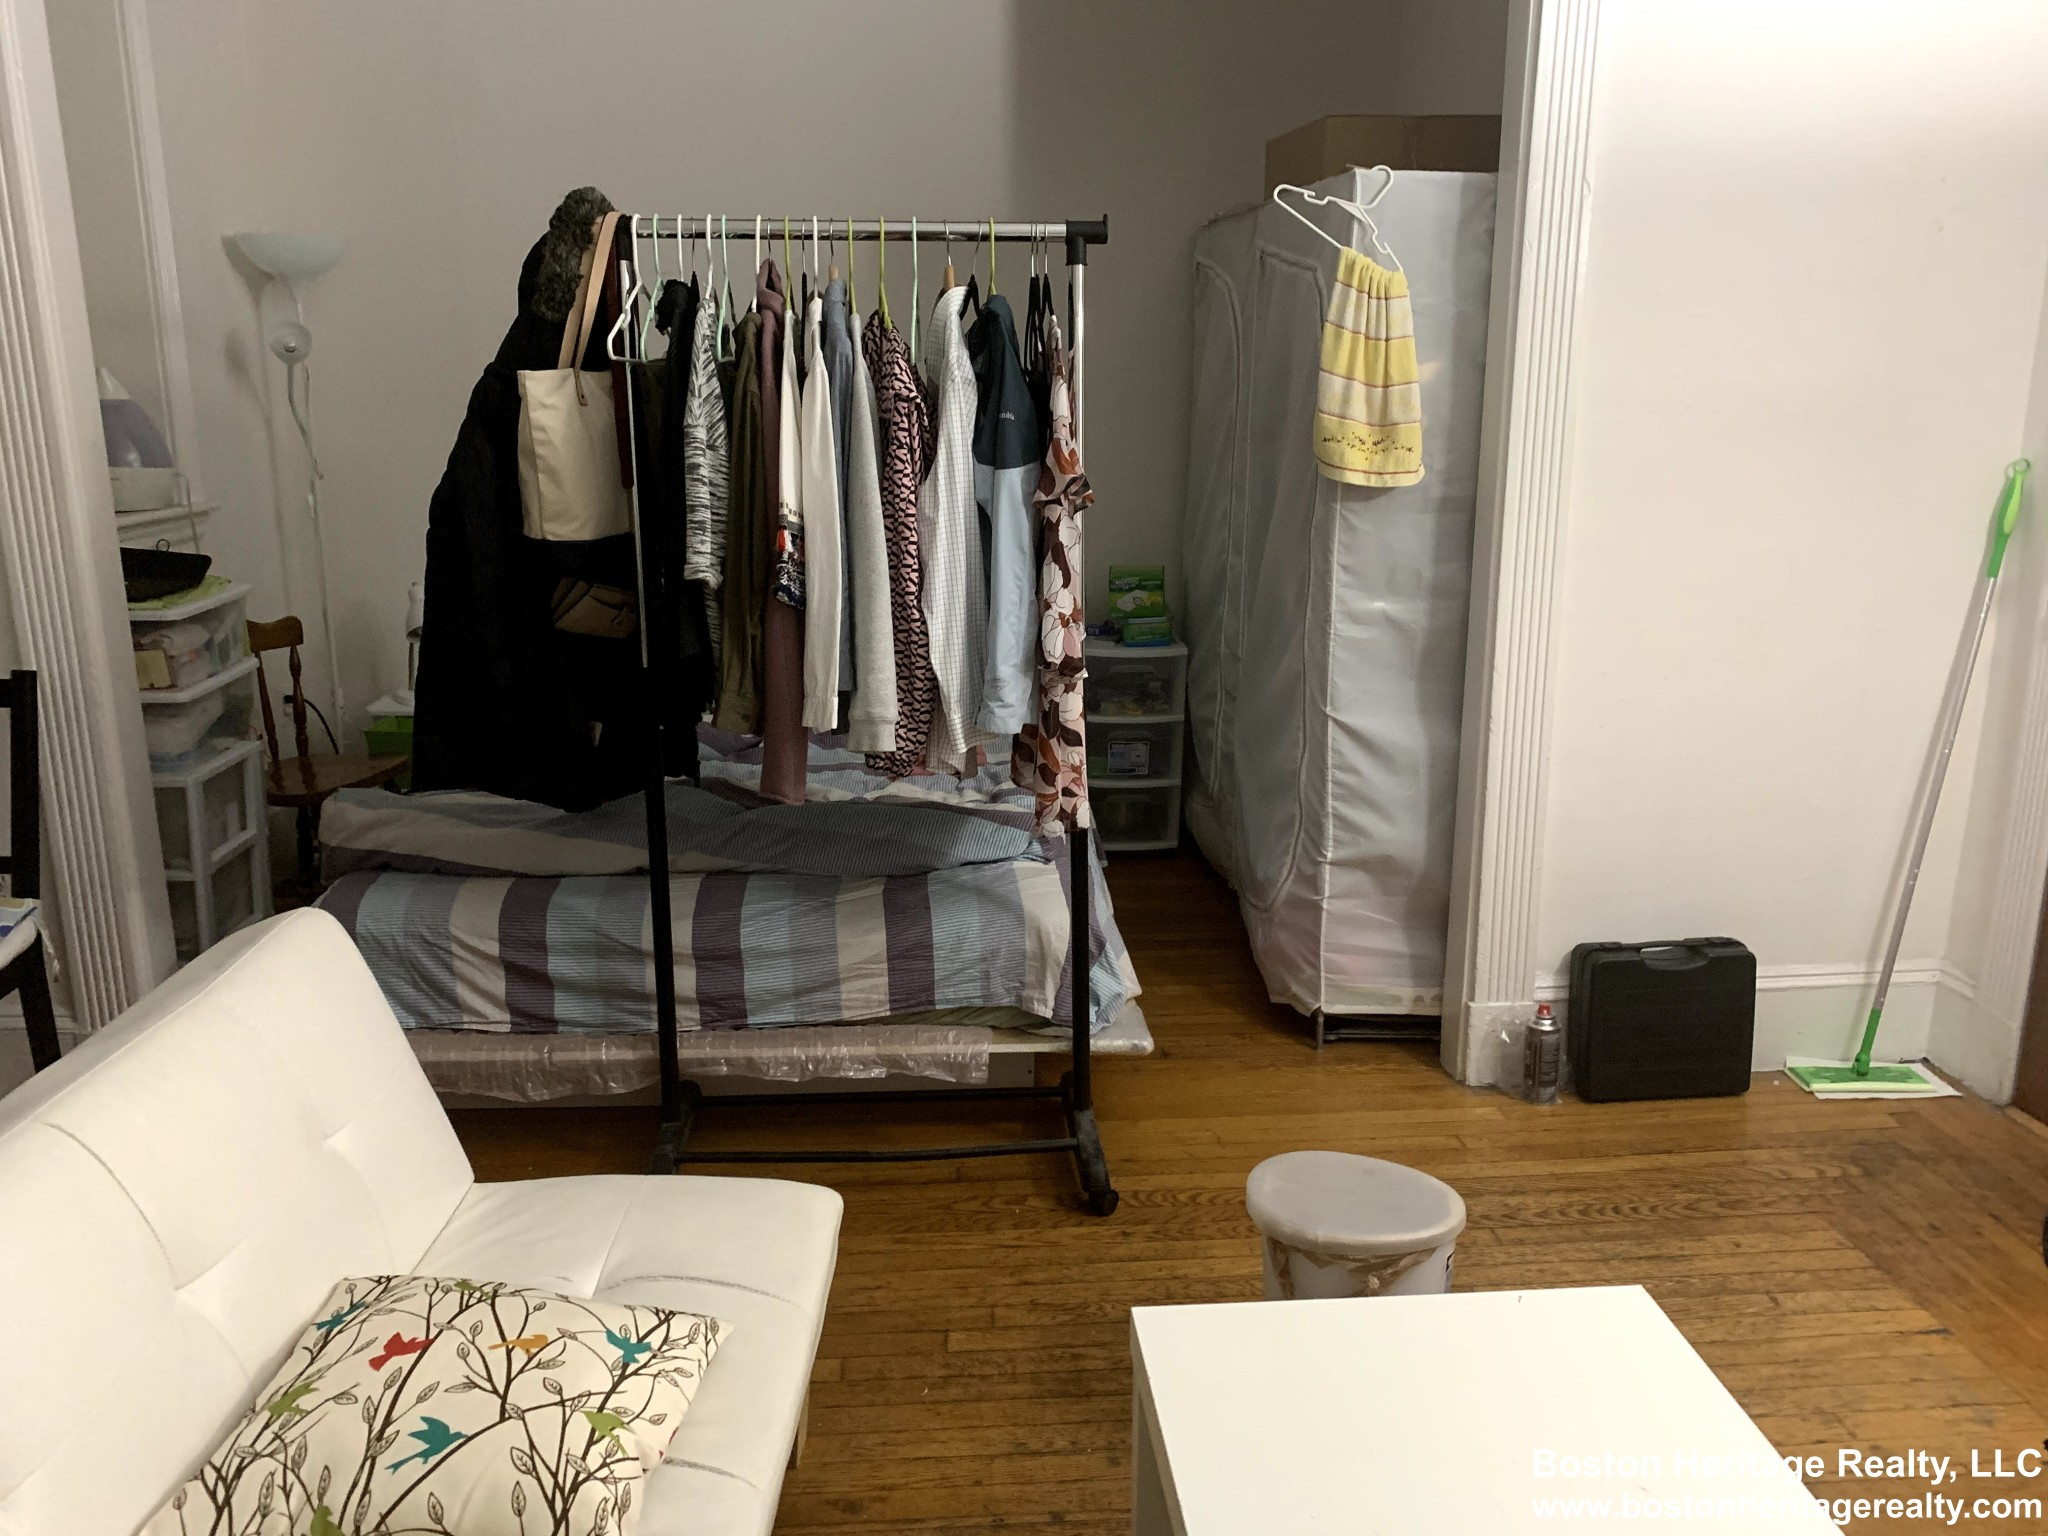 1.8 Beds, 1 Bath apartment in Boston, Fenway for $2,000